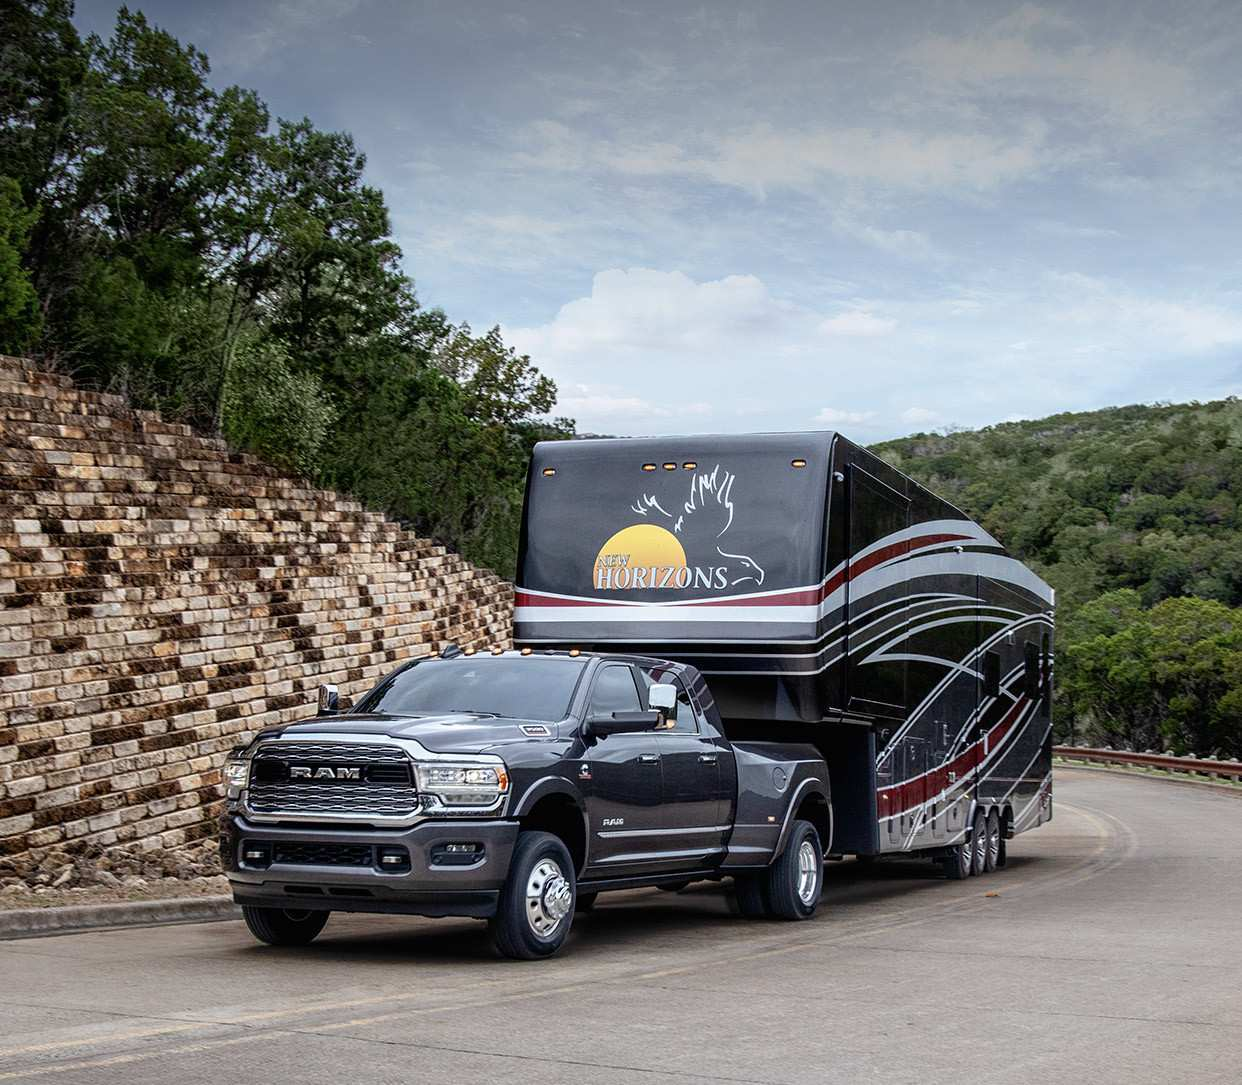 87 Great New 2019 Dodge Ram Towing Capacity Spesification Research New for New 2019 Dodge Ram Towing Capacity Spesification